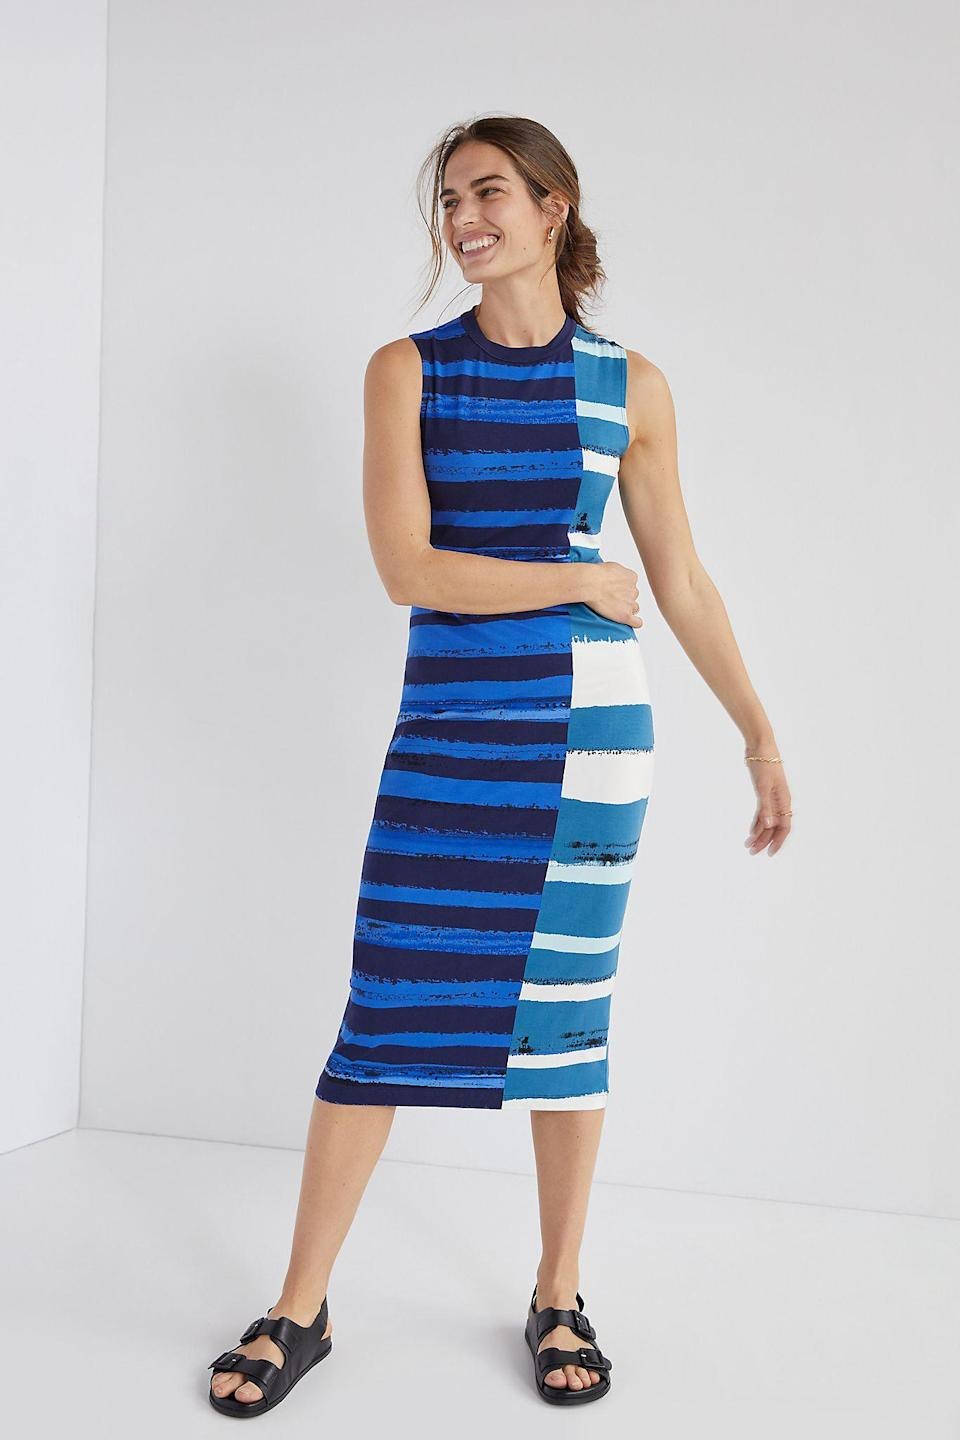 """<br><br><strong>Corey Lynn Calter</strong> Striped Midi Dress, $, available at <a href=""""https://go.skimresources.com/?id=30283X879131&url=https%3A%2F%2Fwww.anthropologie.com%2Fshop%2Fcorey-lynn-calter-striped-midi-dress"""" rel=""""nofollow noopener"""" target=""""_blank"""" data-ylk=""""slk:Anthropologie"""" class=""""link rapid-noclick-resp"""">Anthropologie</a>"""